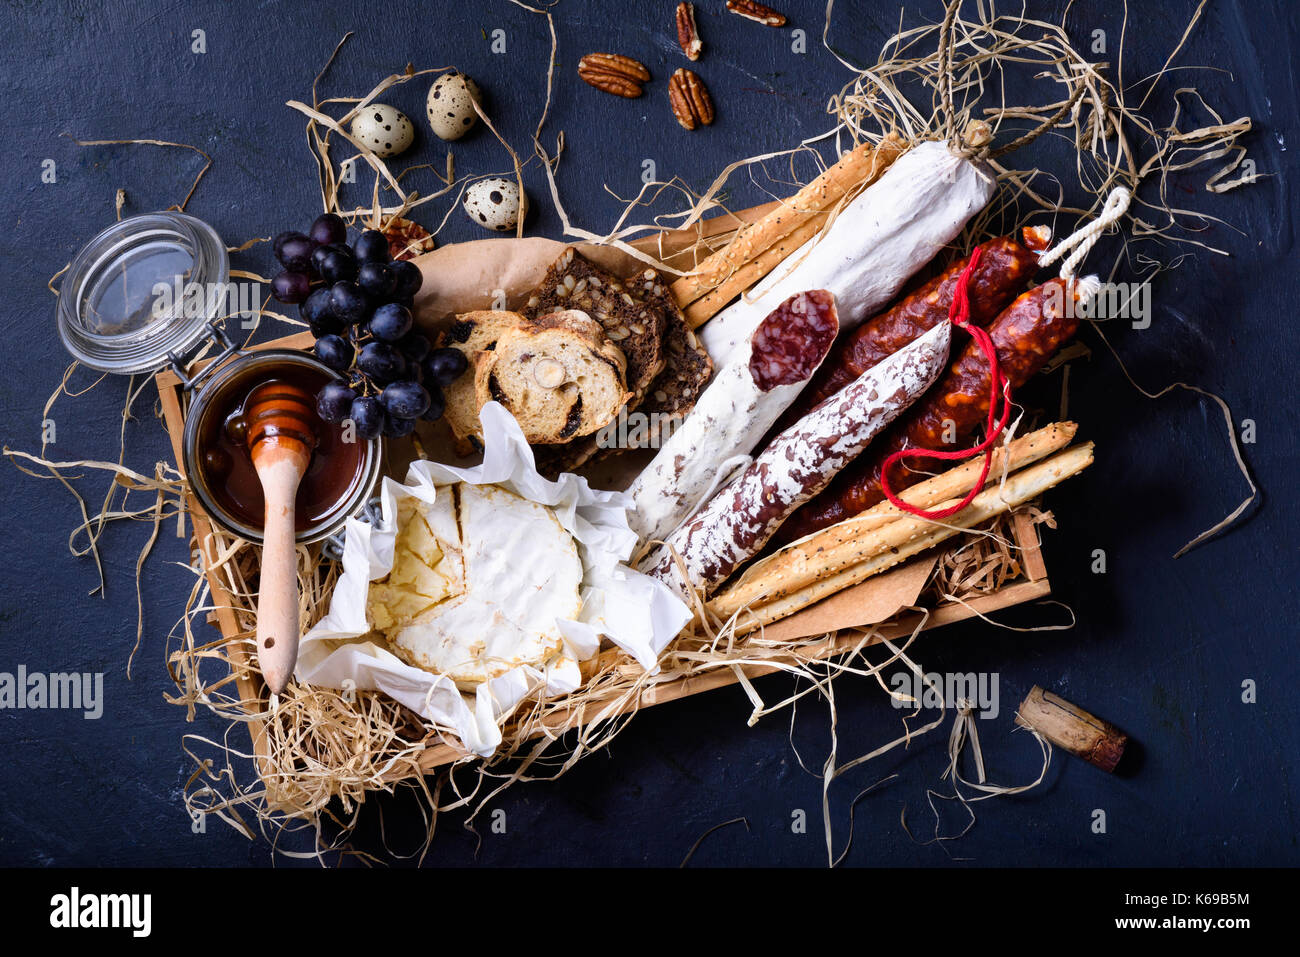 Antipasto appetizer prepared in a wooden box. Top view, blue background. - Stock Image